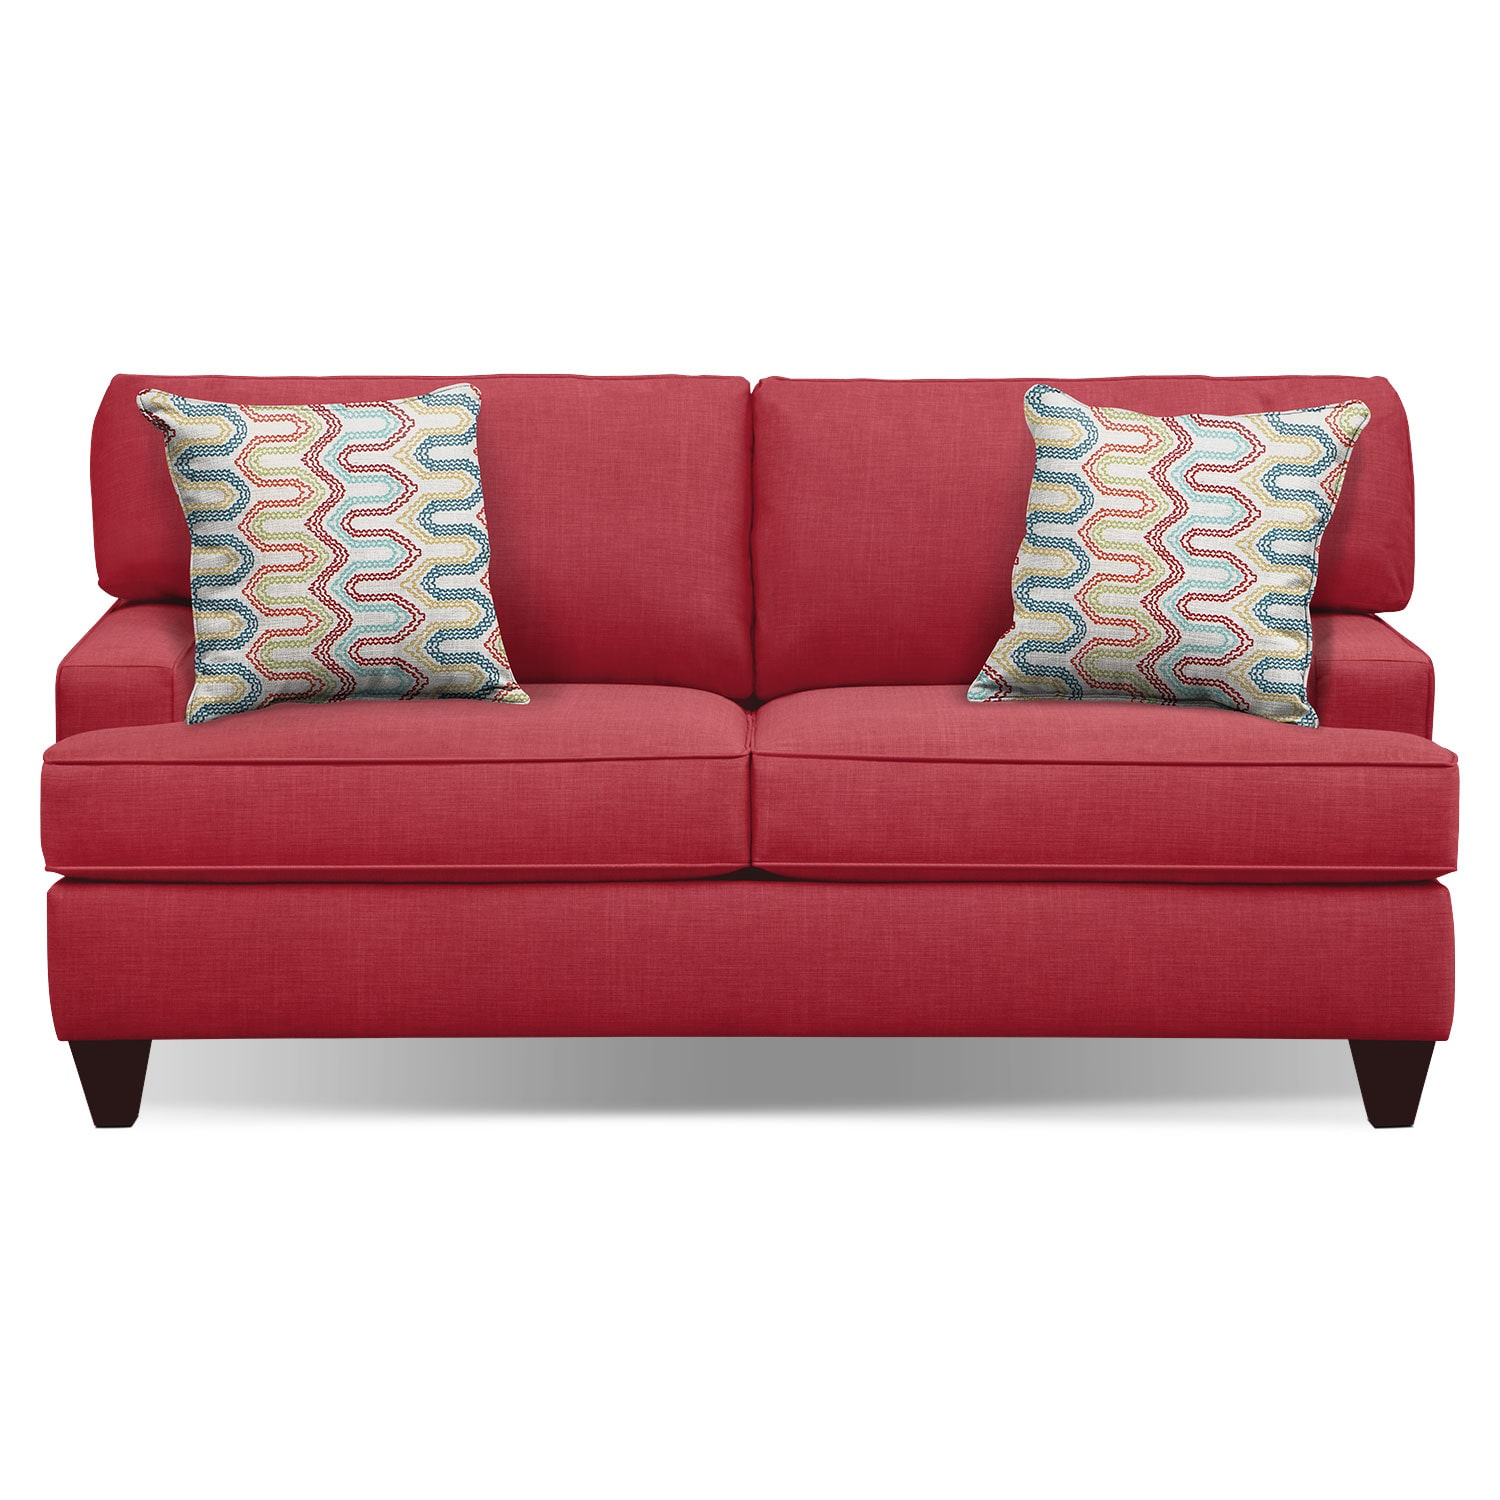 "Living Room Furniture - Conner Red 75"" Sofa"